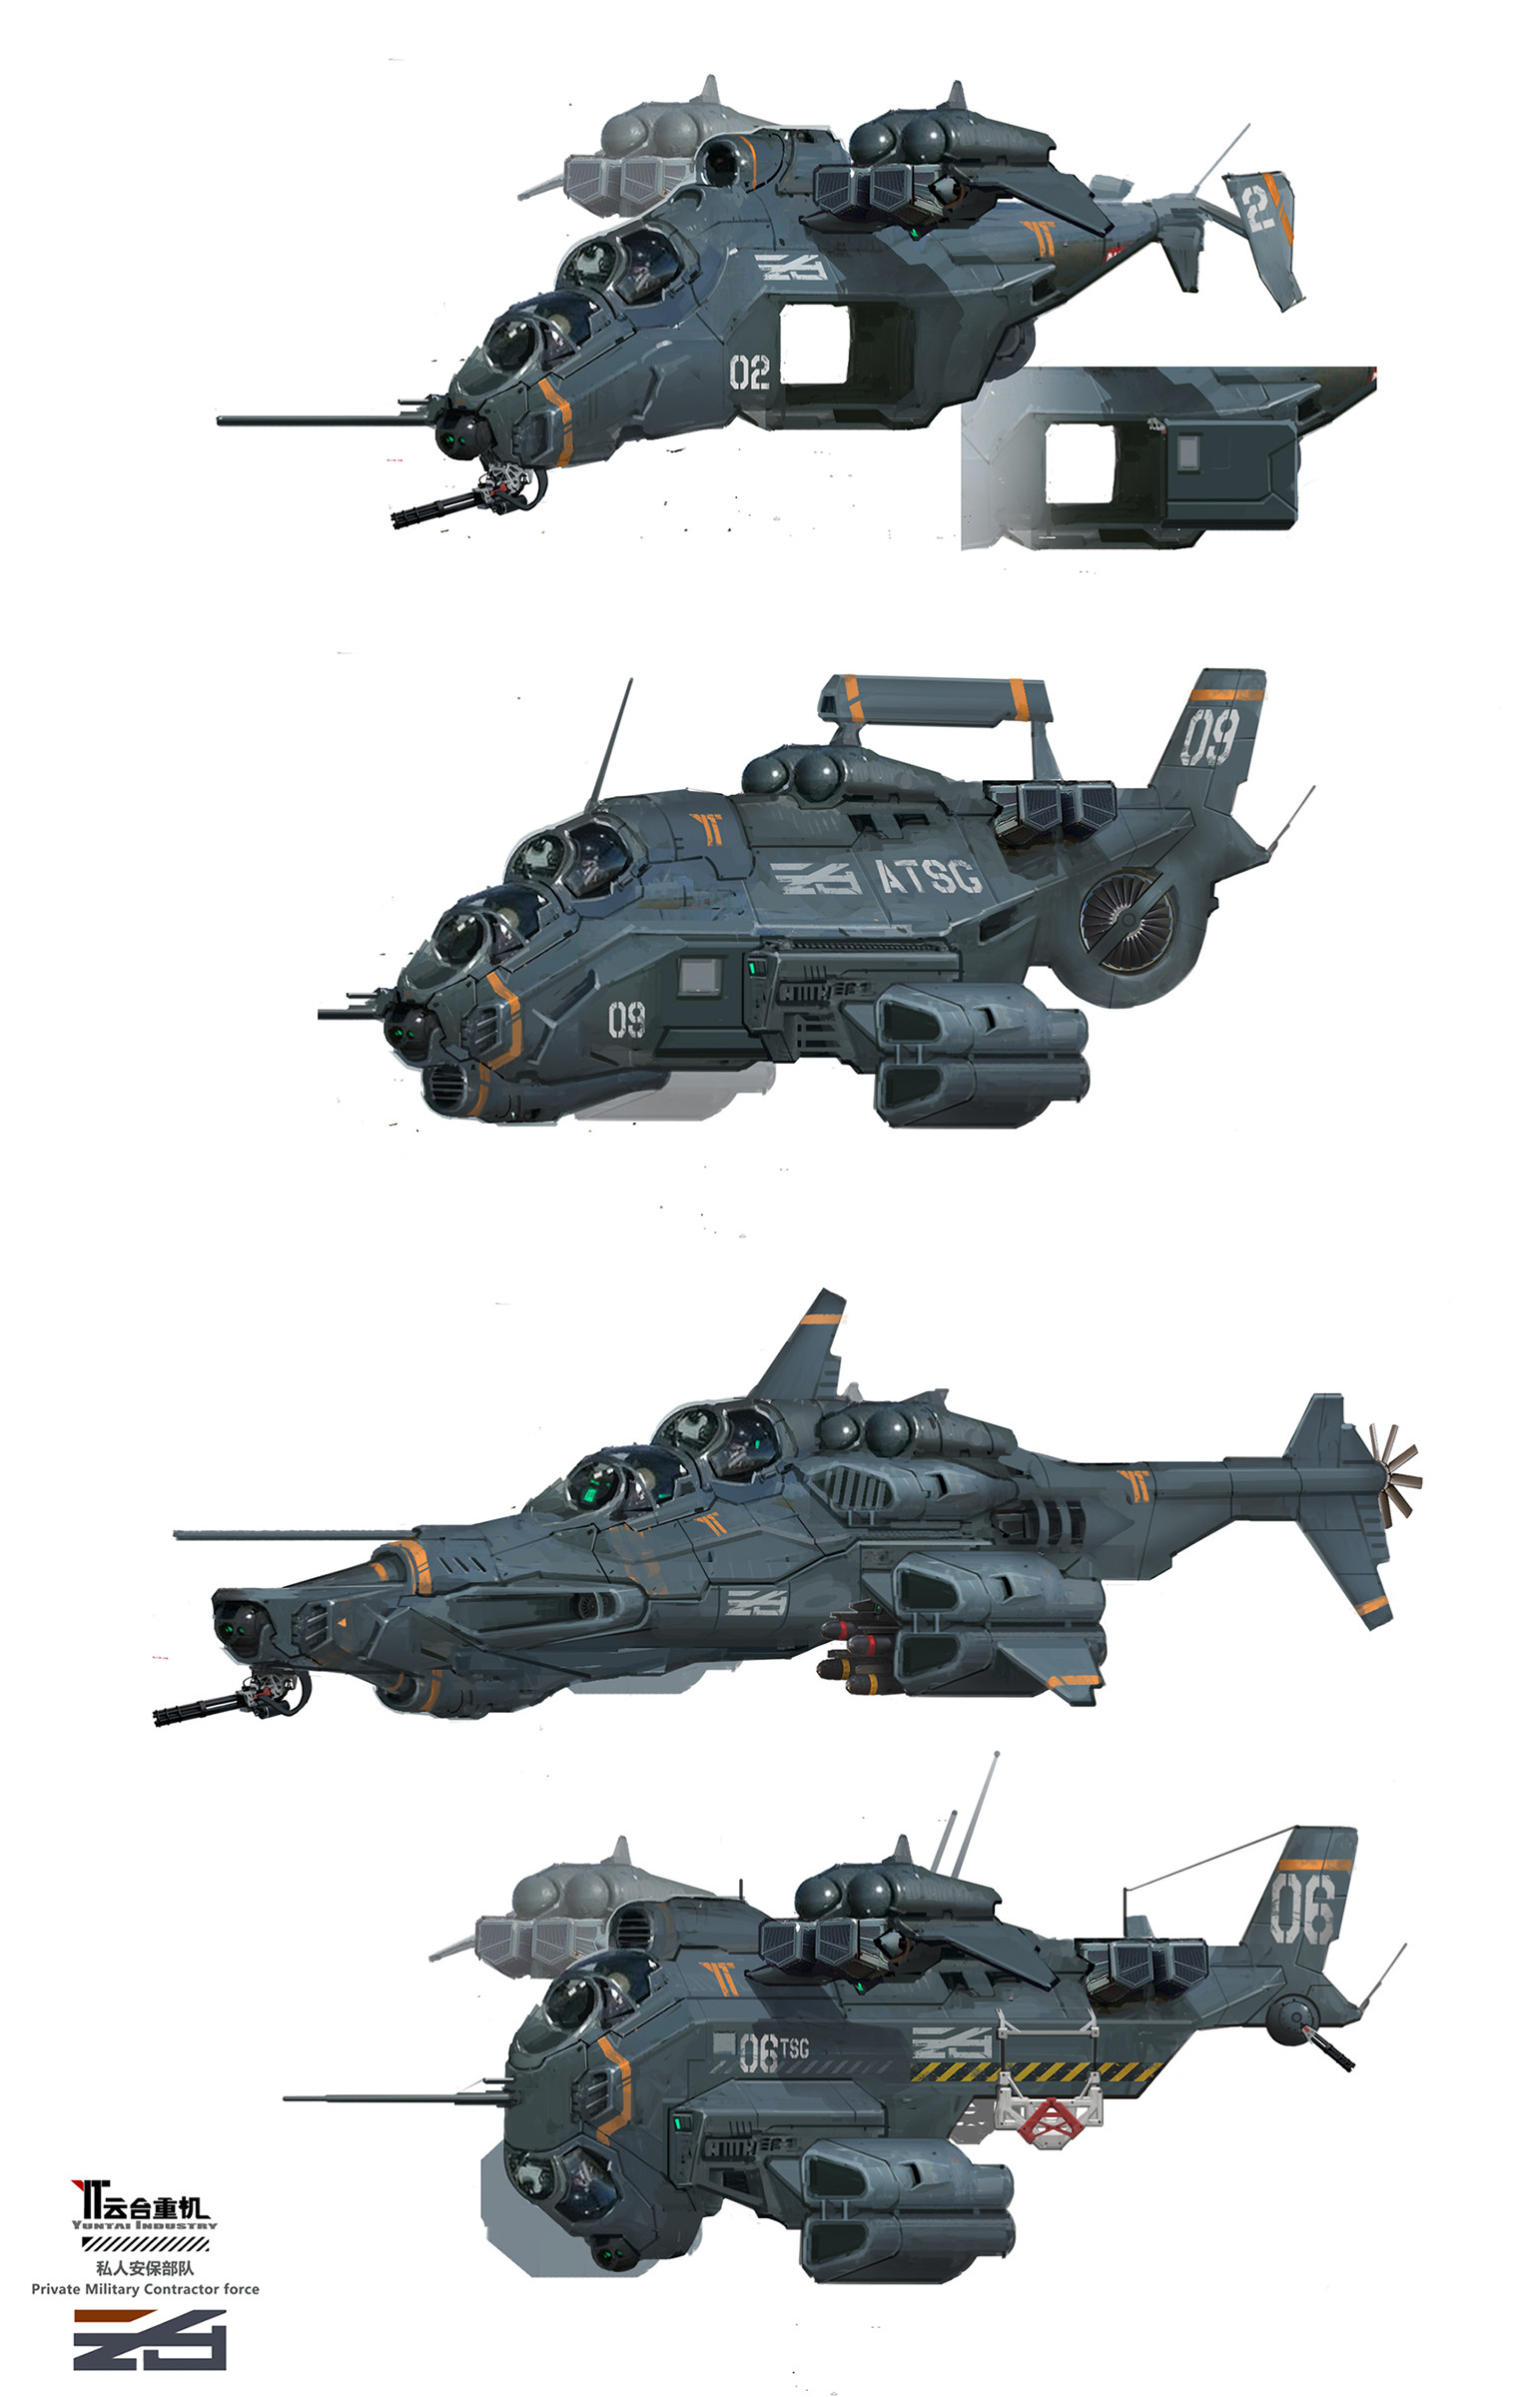 ArtStation - aircraft, Mark Sanwel